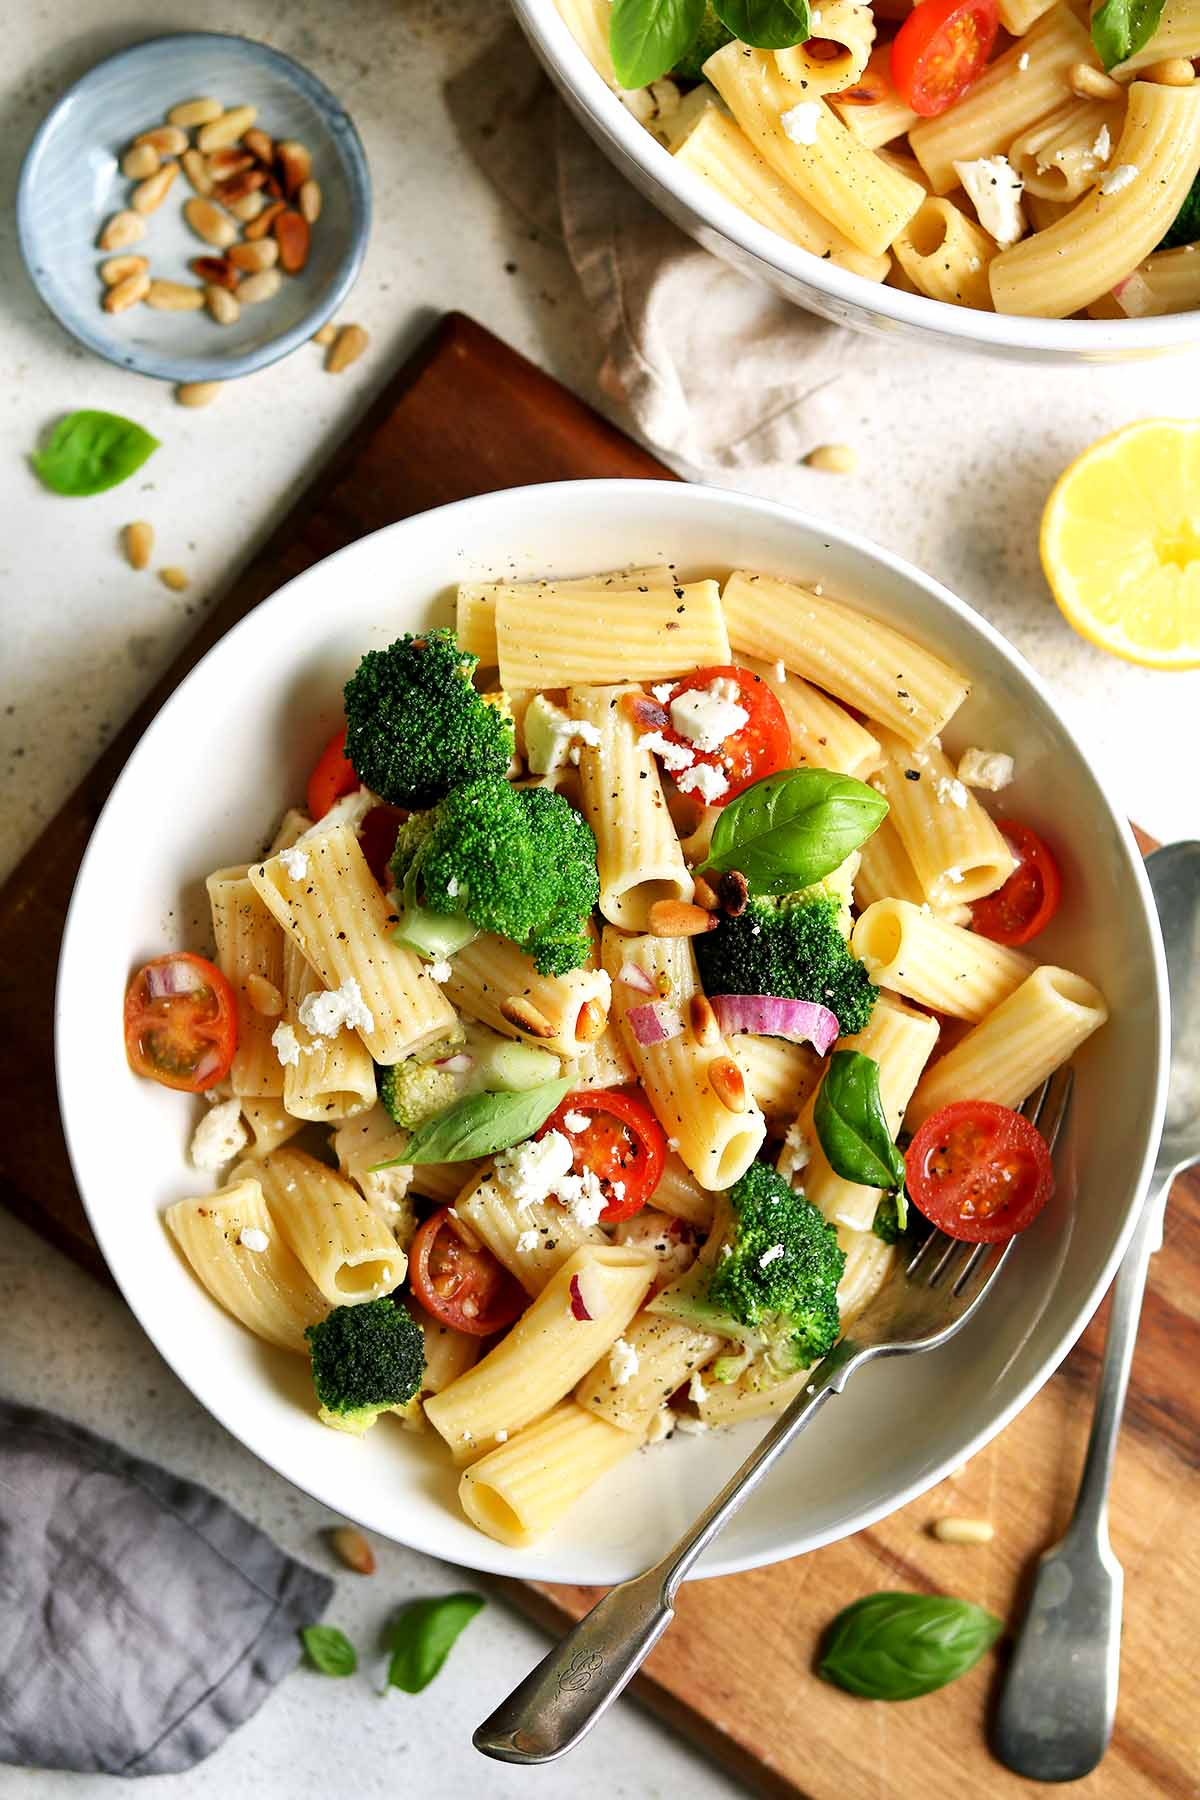 A pasta salad made with broccoli, tomatoes, feta, basil and pine nuts on a chopping board